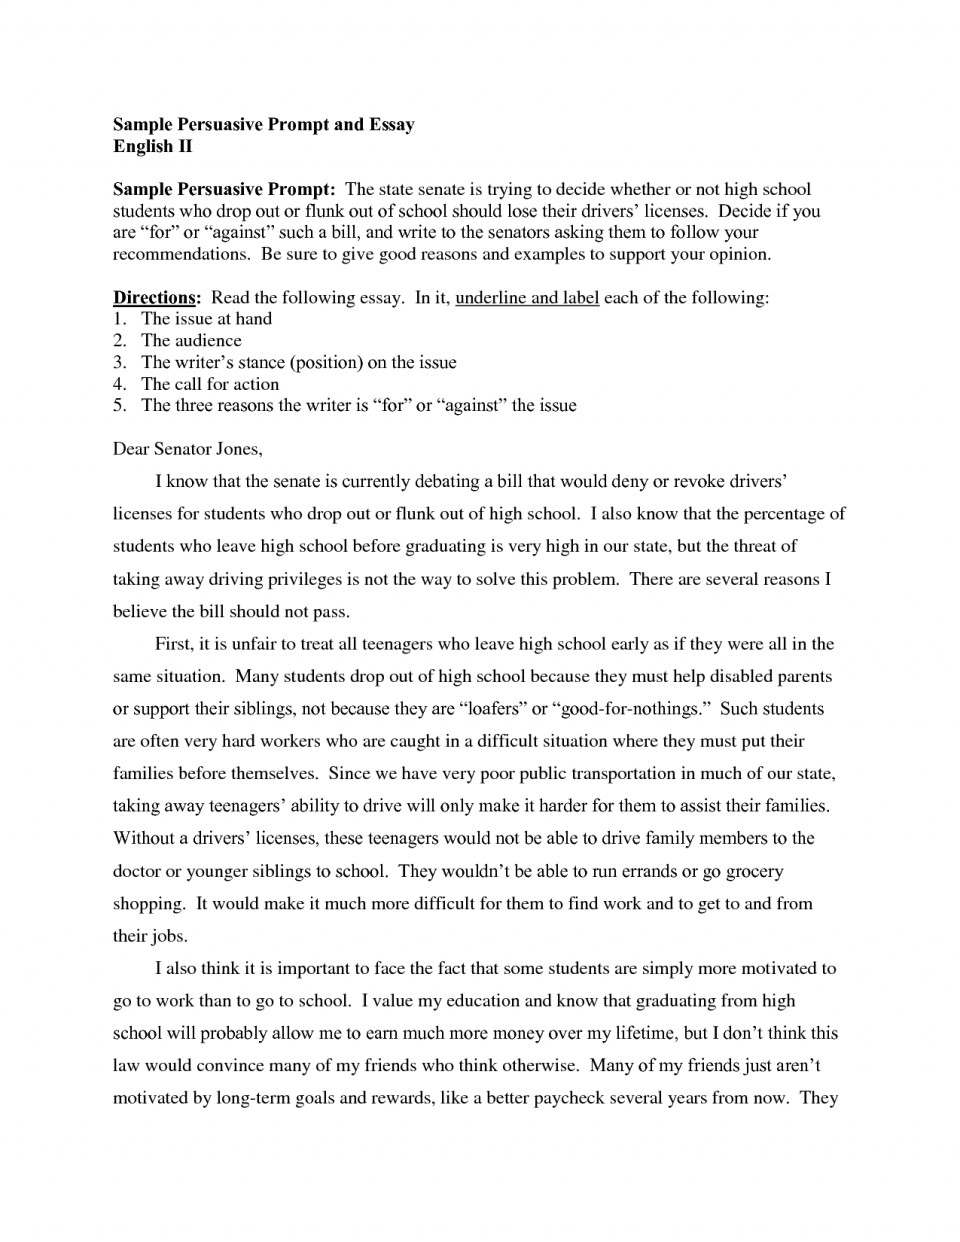 013 Research Paper Easy Topic Persuasive Essay Topics For High School Sample Ideas Highschool Students Good Prompt Funny Fun List Of Seniors Writing English Sensational Psychology History 960